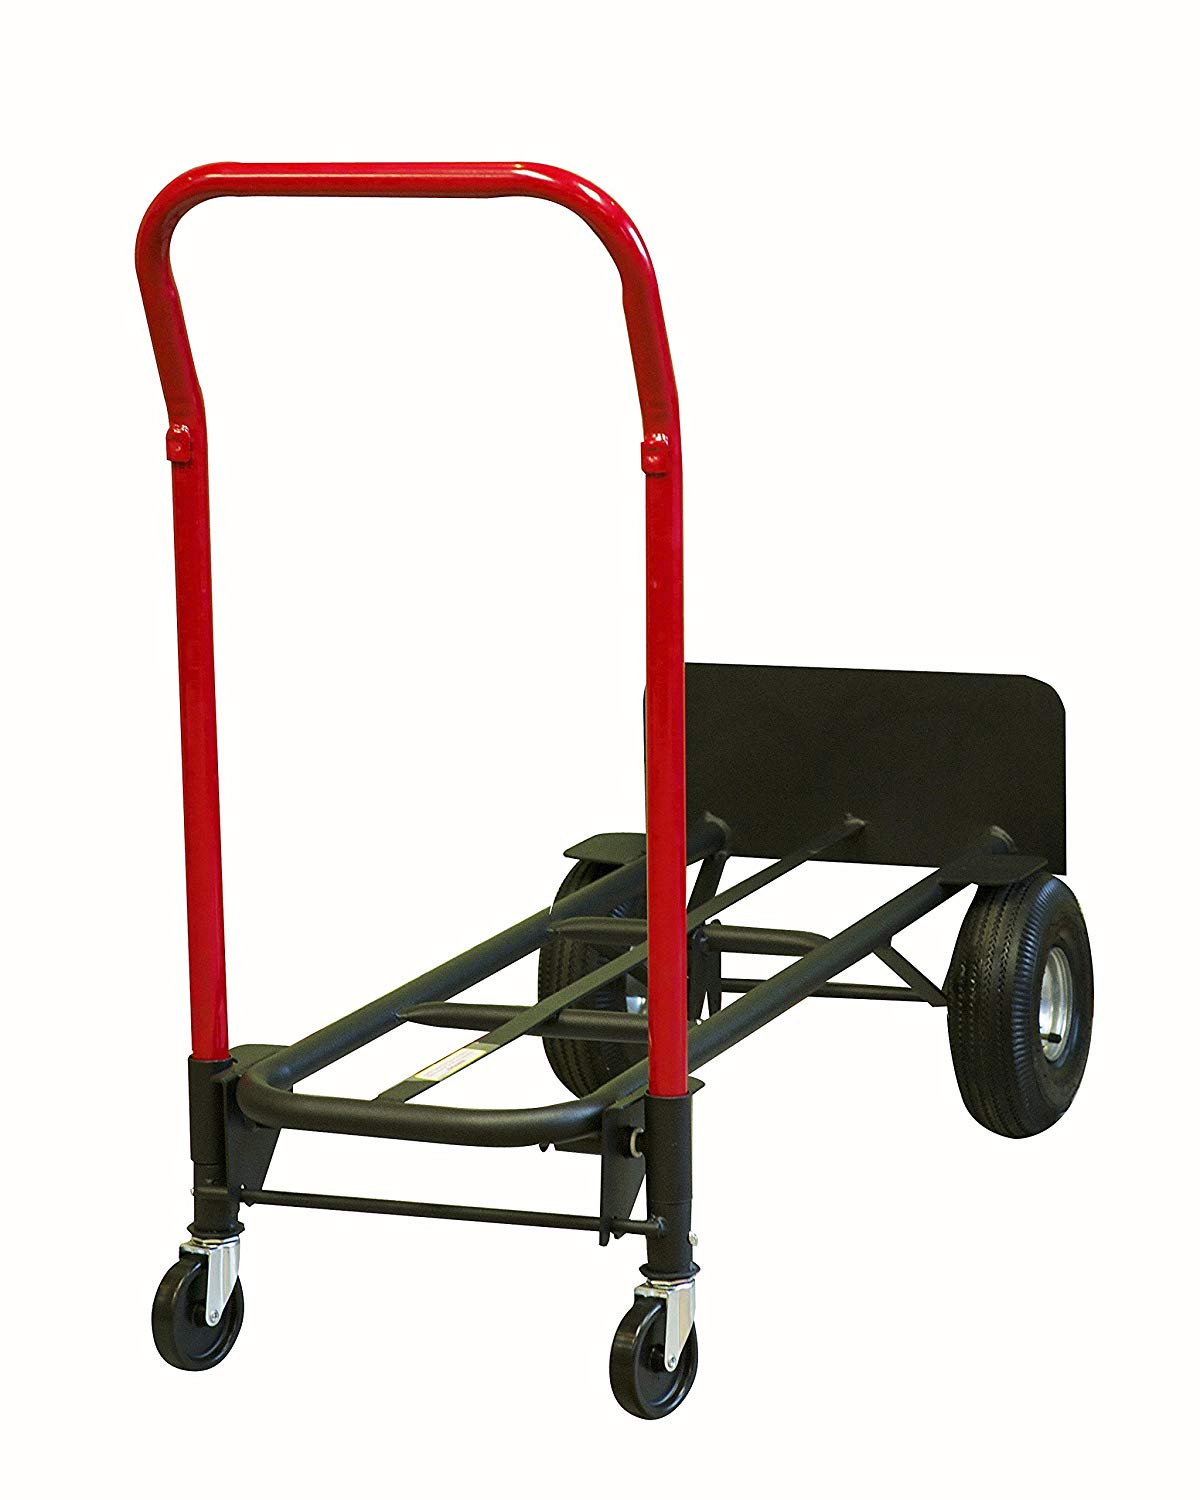 32766 - New Milwaukee Heavy-Duty Quick-Latch Convertible Hand Truck USA